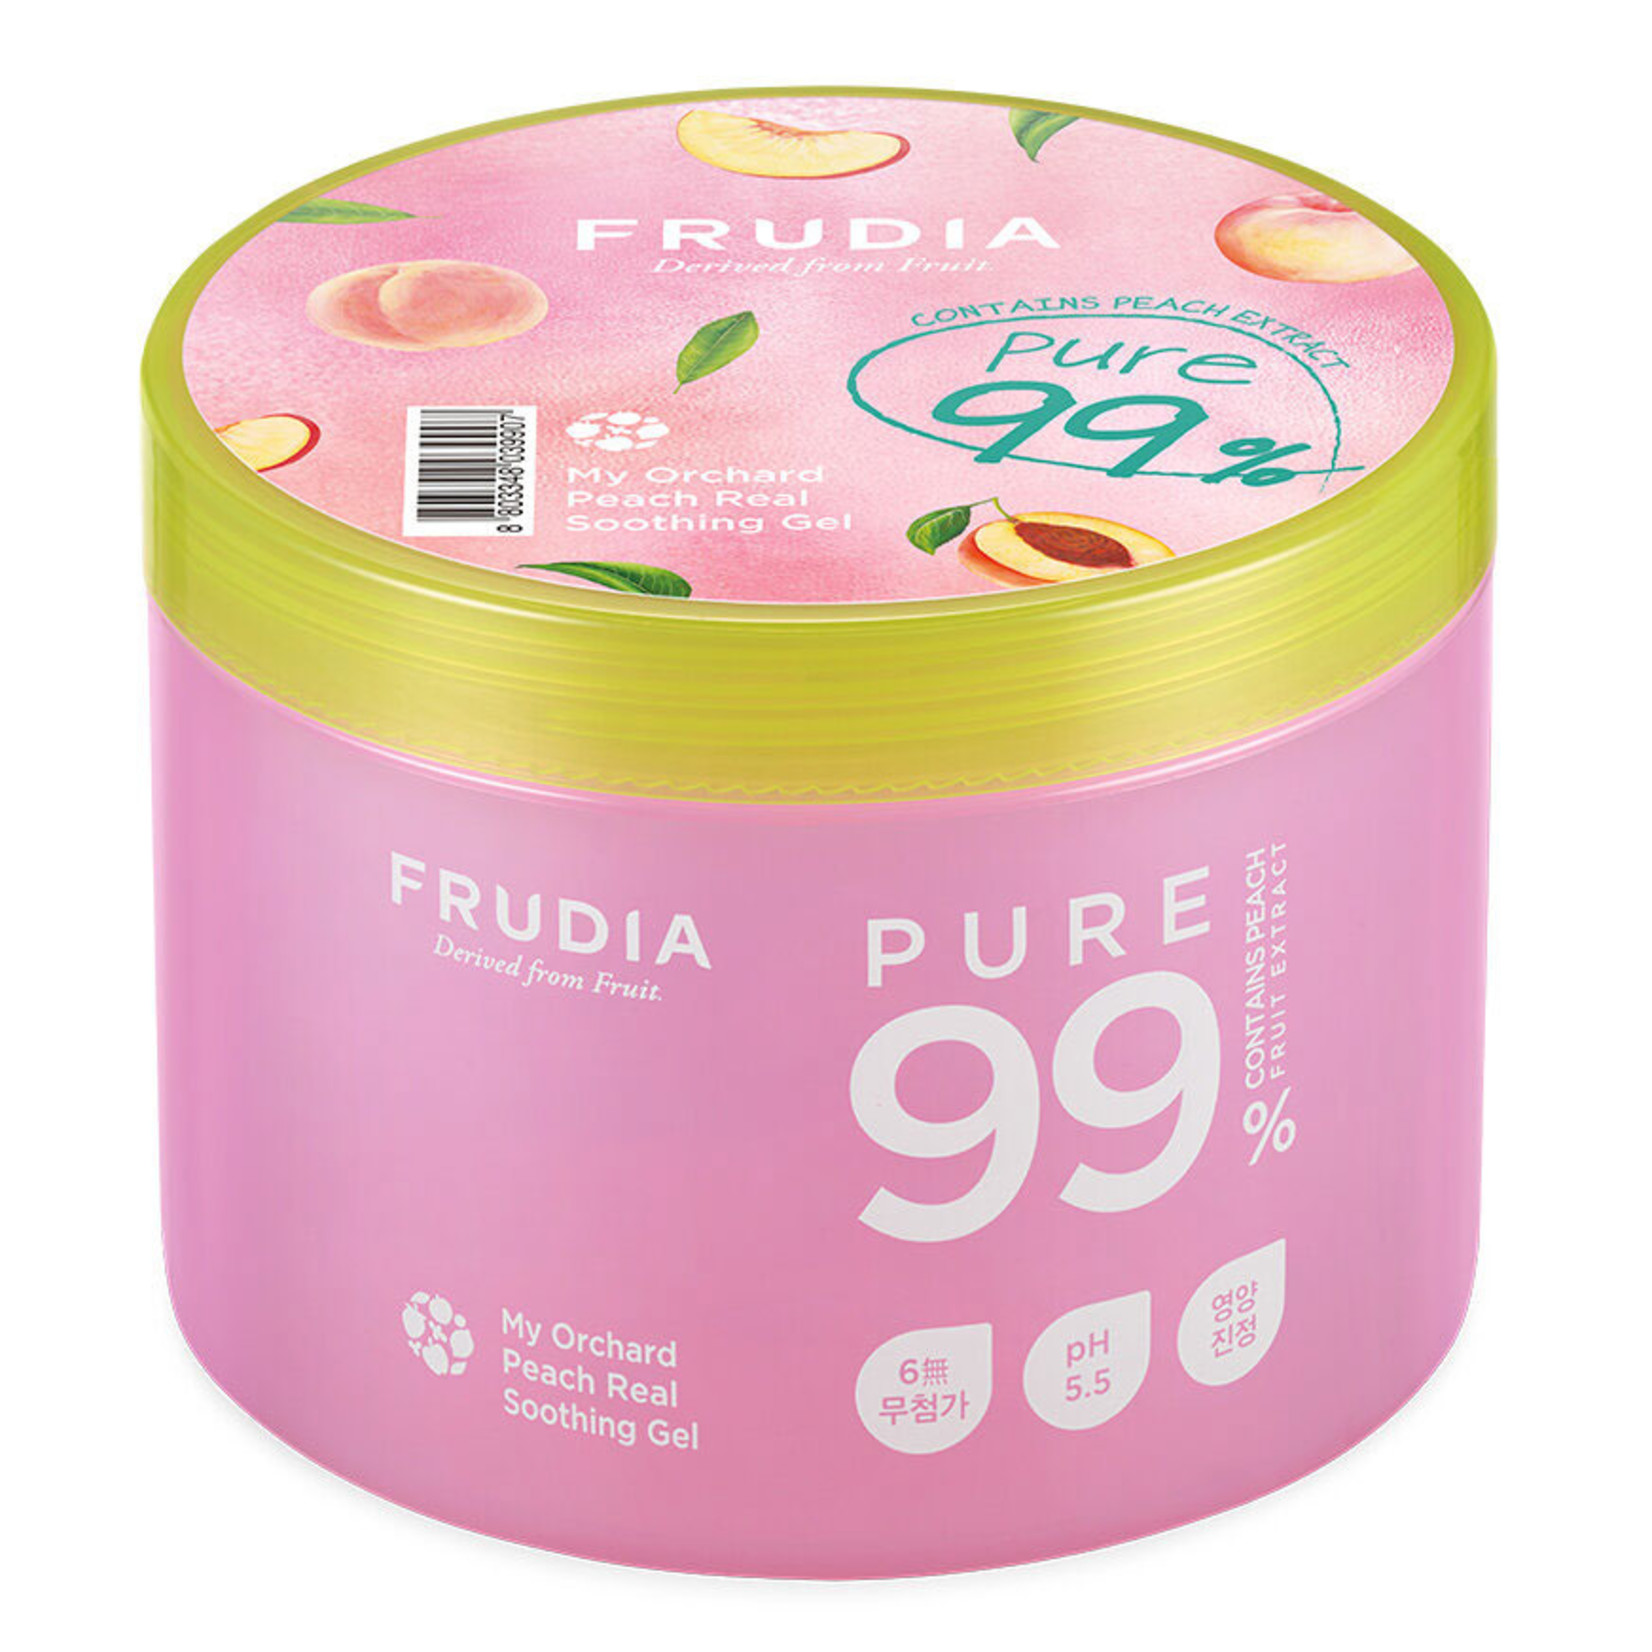 Frudia My Orchard Peach Real Soothing Gel